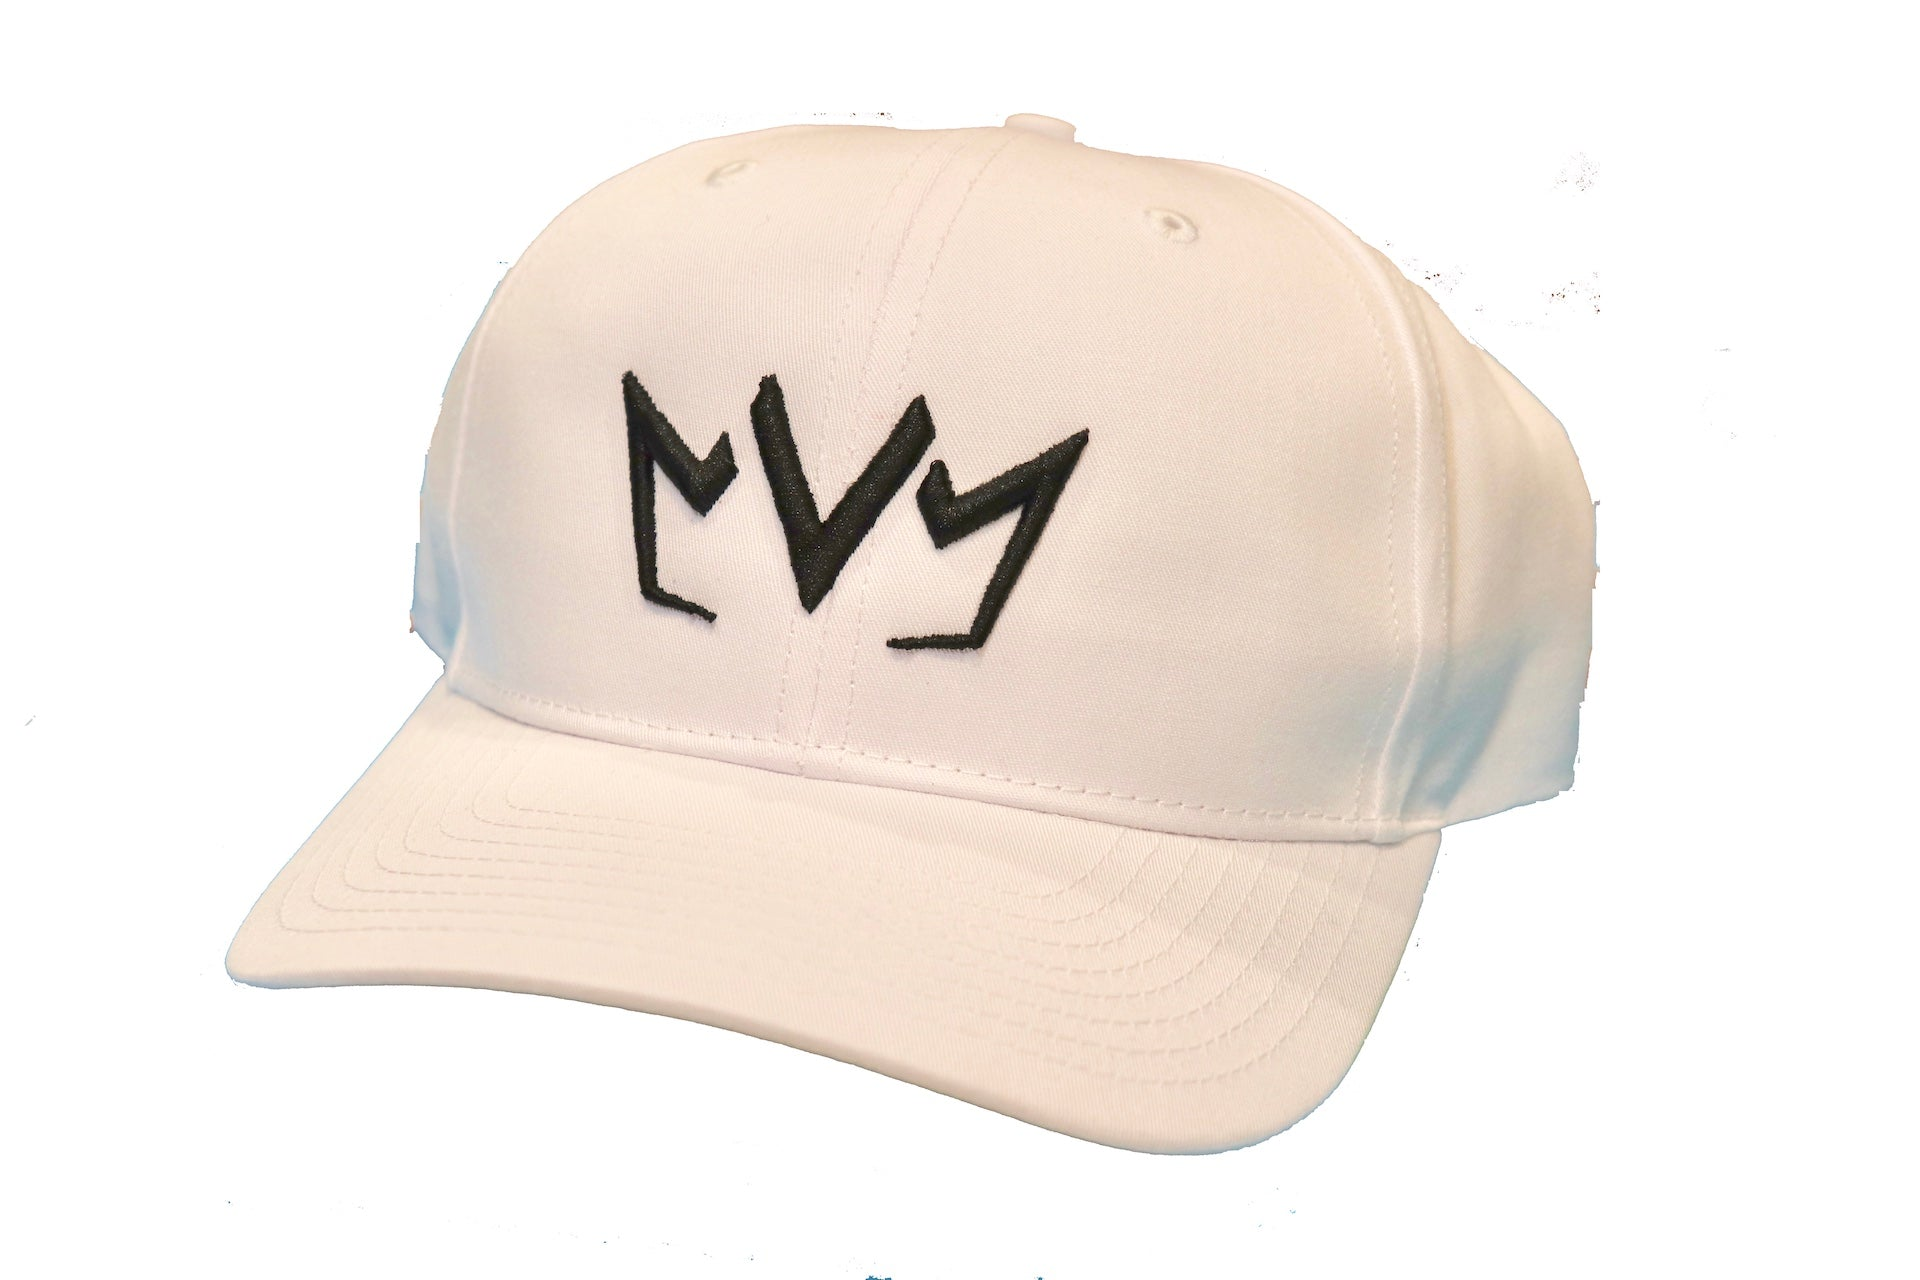 White MVM Crown Snapback with the MVM Crown embroidered in black on the front.